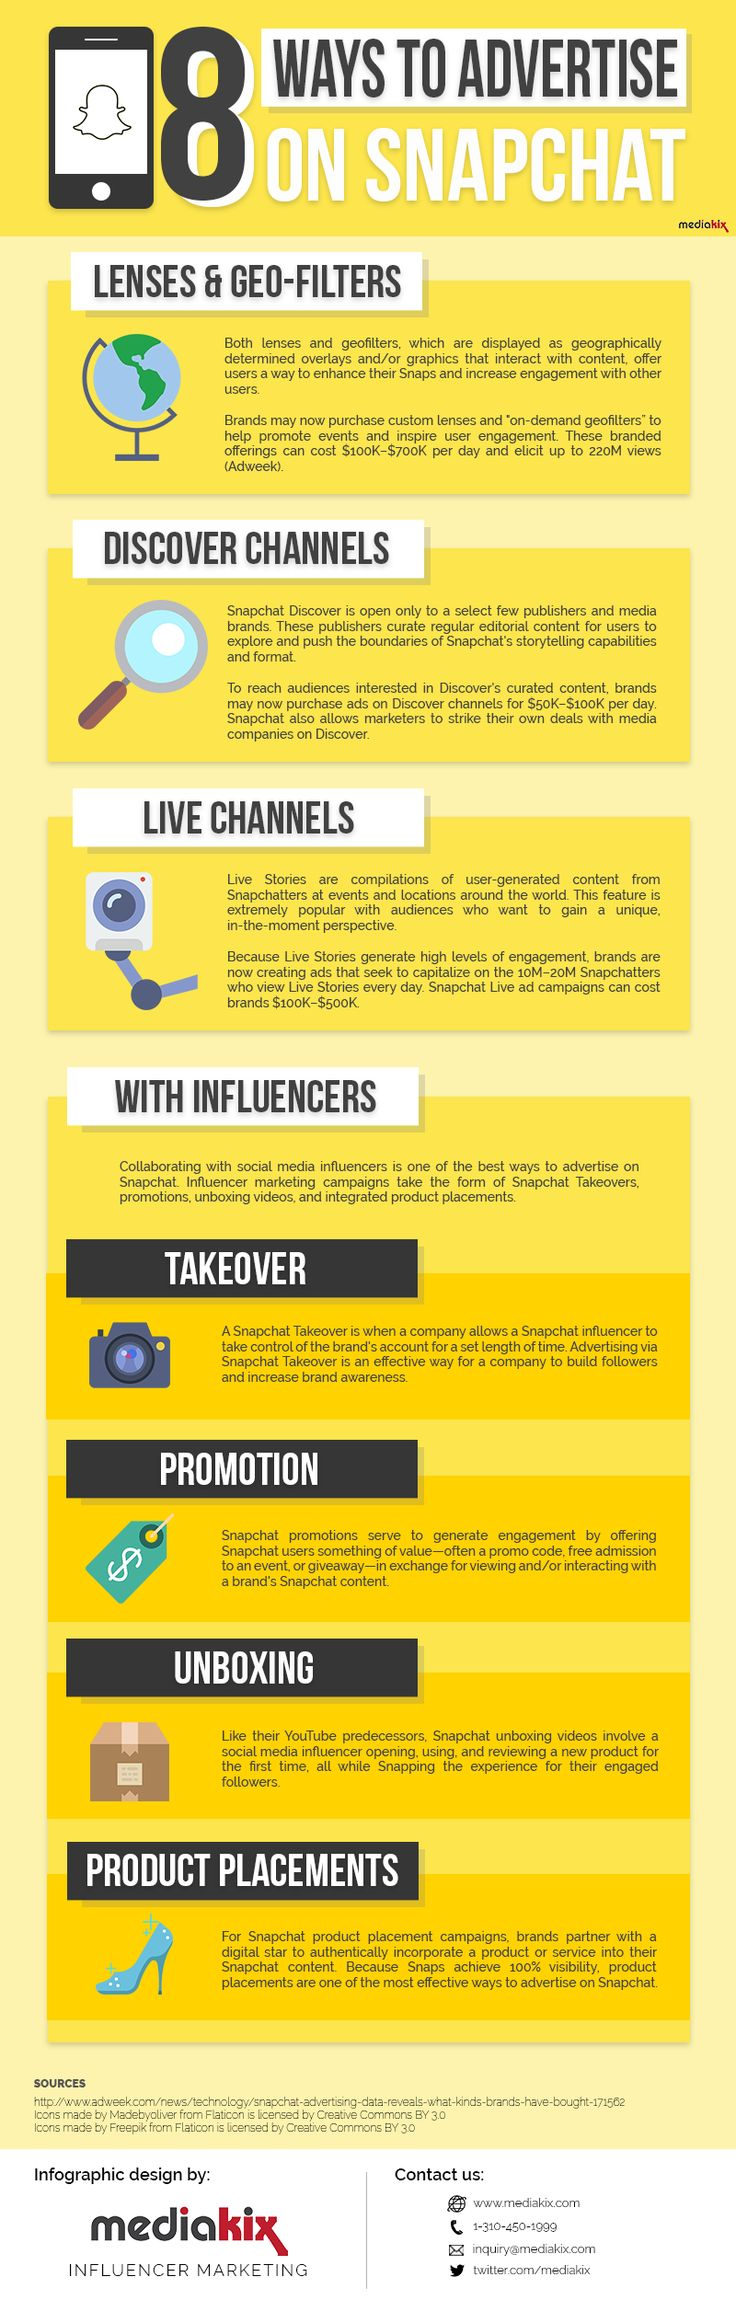 [Infographic] 8 Ways to Advertise on Snapchat